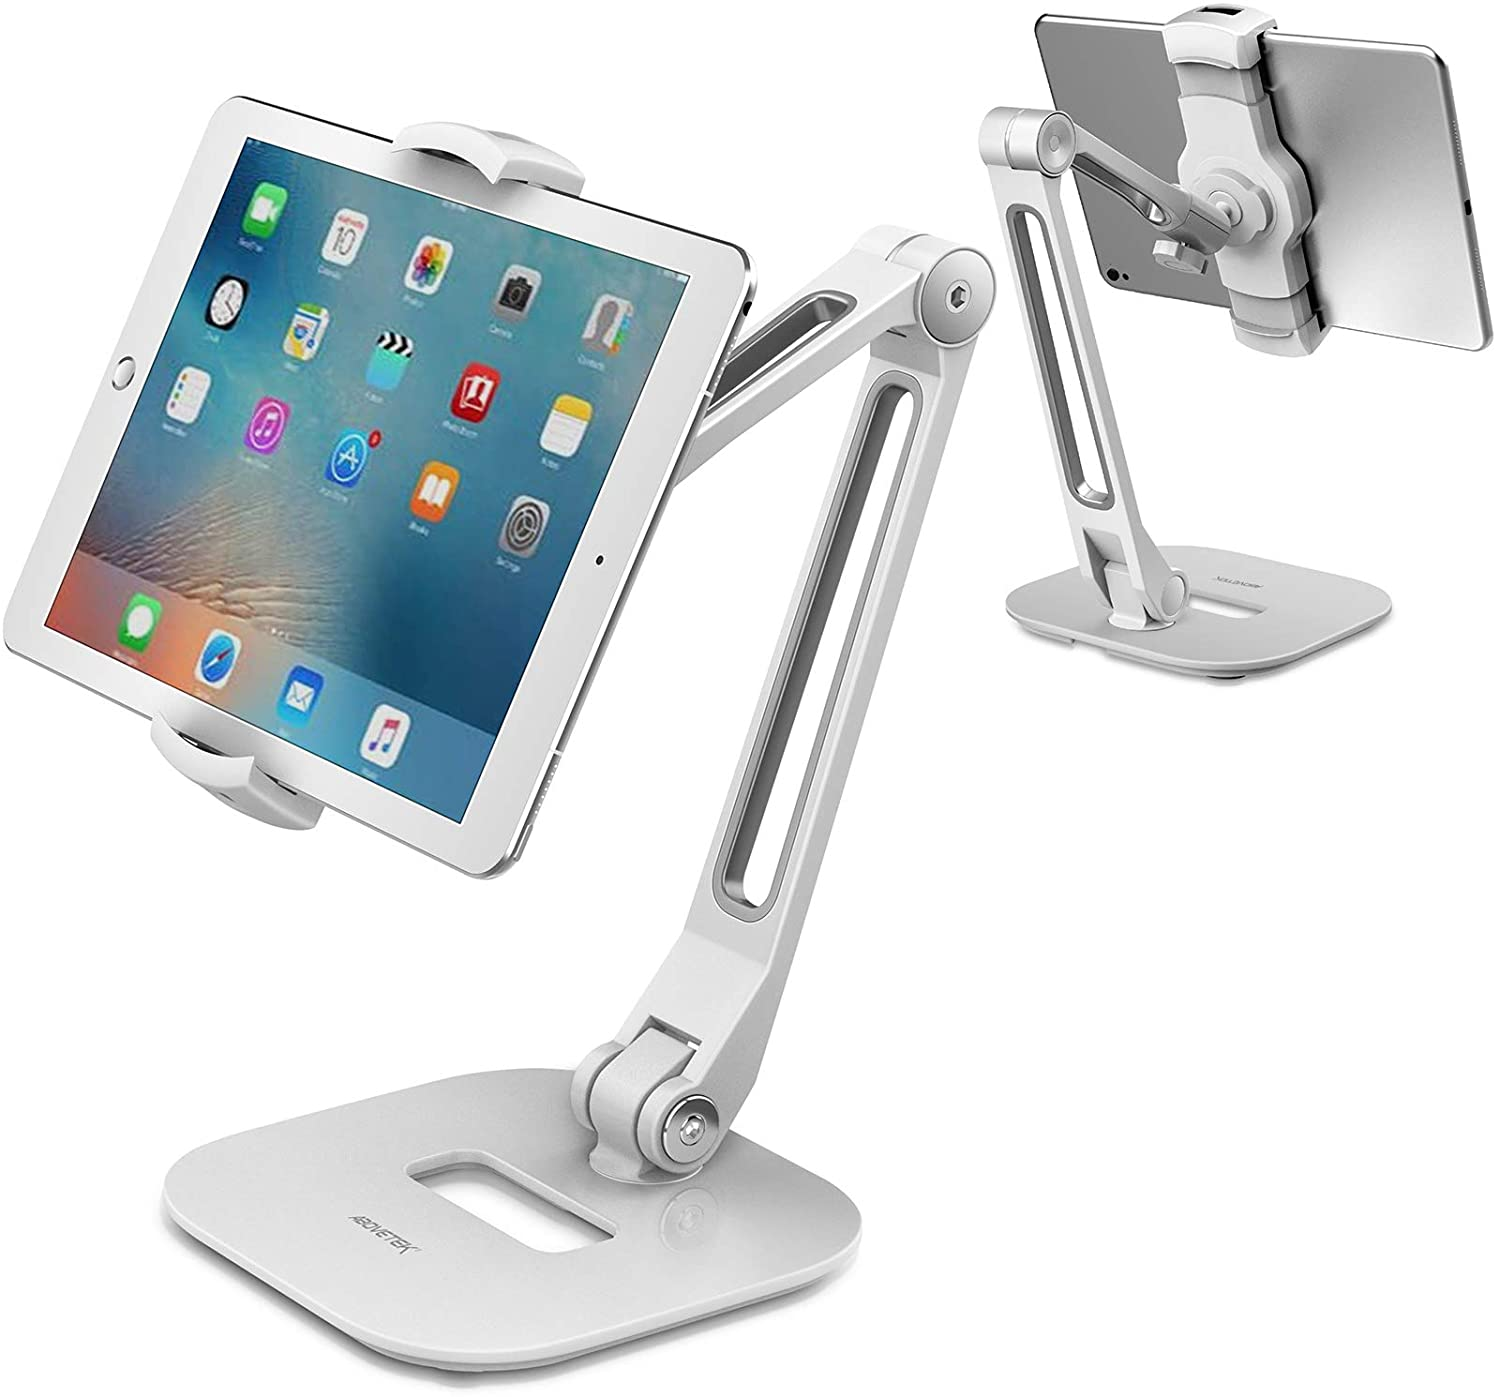 Made of ABS and Sturdy Aluminum Alloy YIKA Cell Phone Stand Desk Phone Stand Compatible with Phones//Kindle//Tablet//iPhone//Switch 4-9.7 Phone Stand Holder Cradle for Desktop